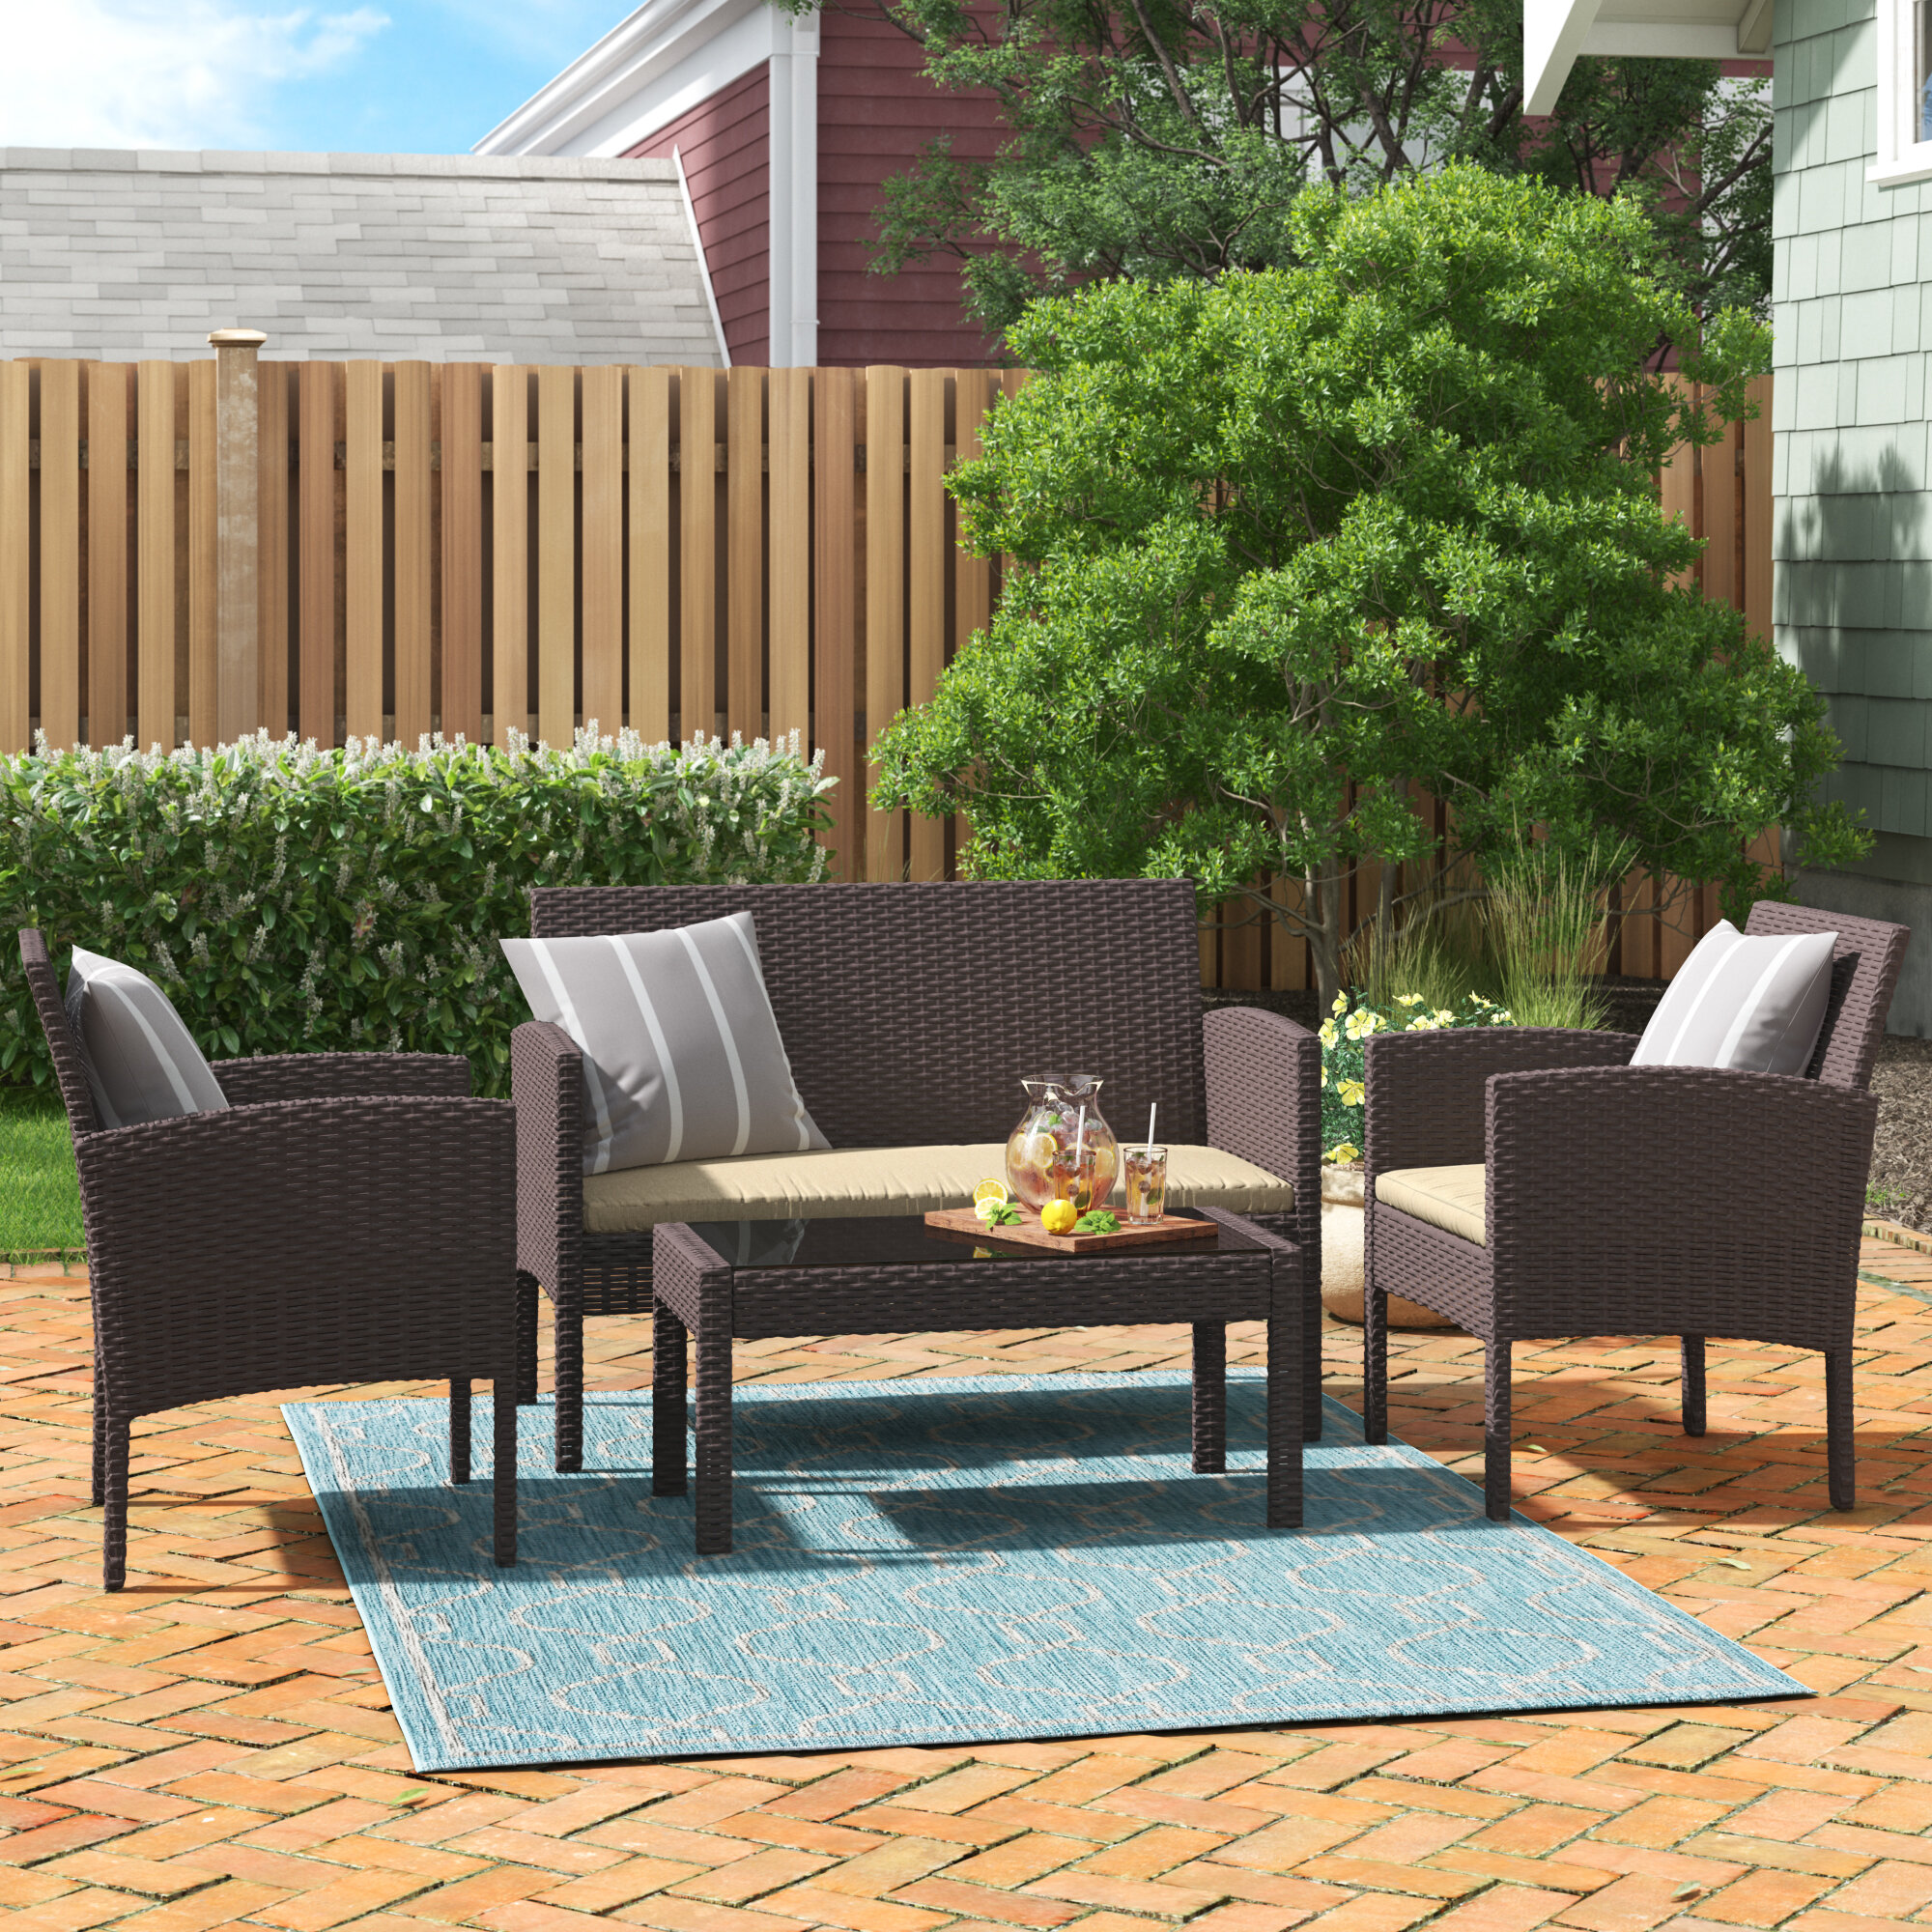 World Menagerie Tessio 4 Piece Rattan Sofa Seating Group With Cushions Reviews Wayfair